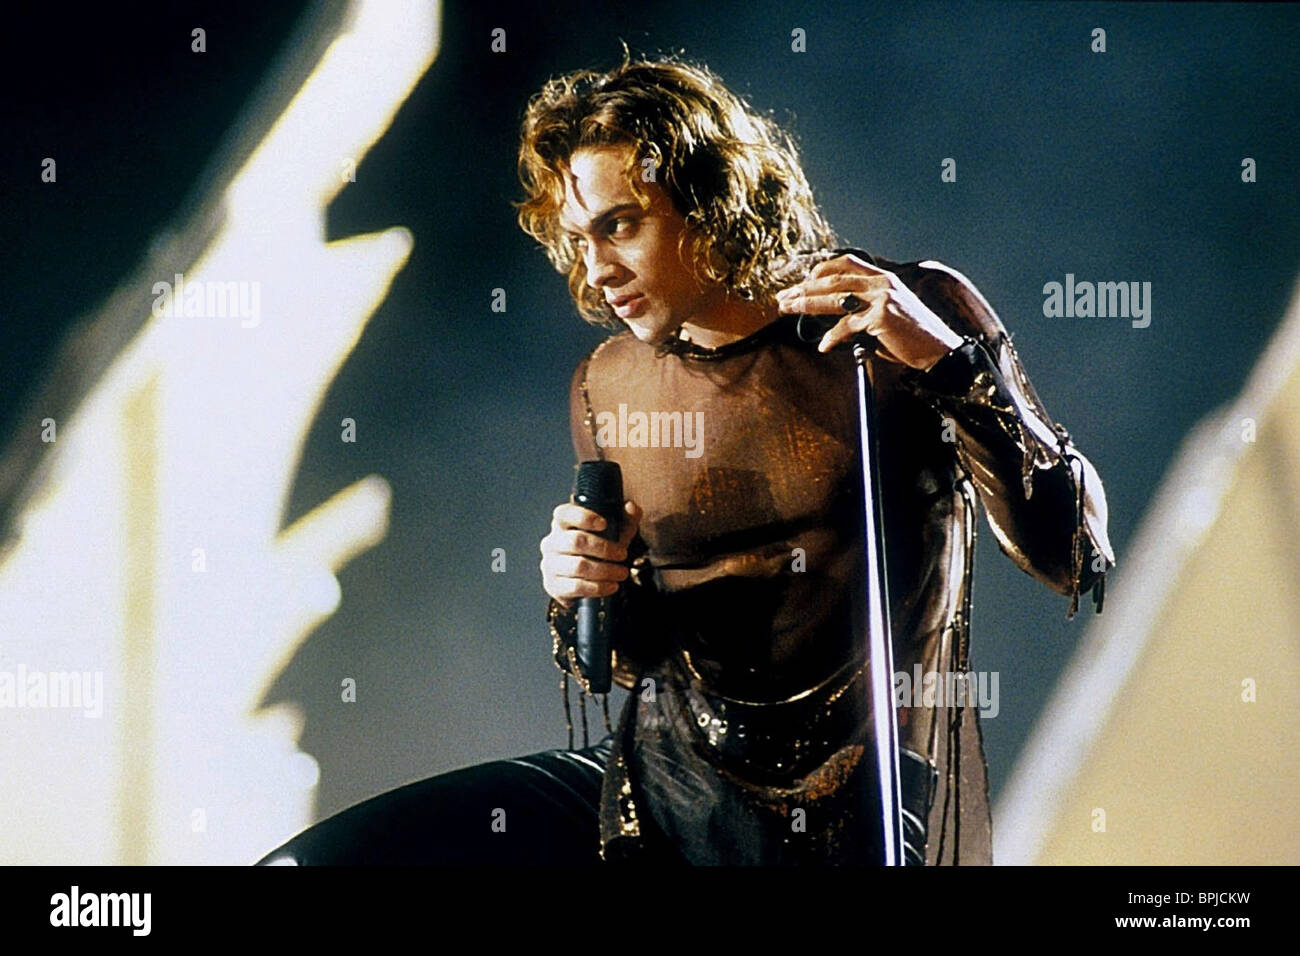 STUART TOWNSEND QUEEN OF THE DAMNED (2002) - Stock Image